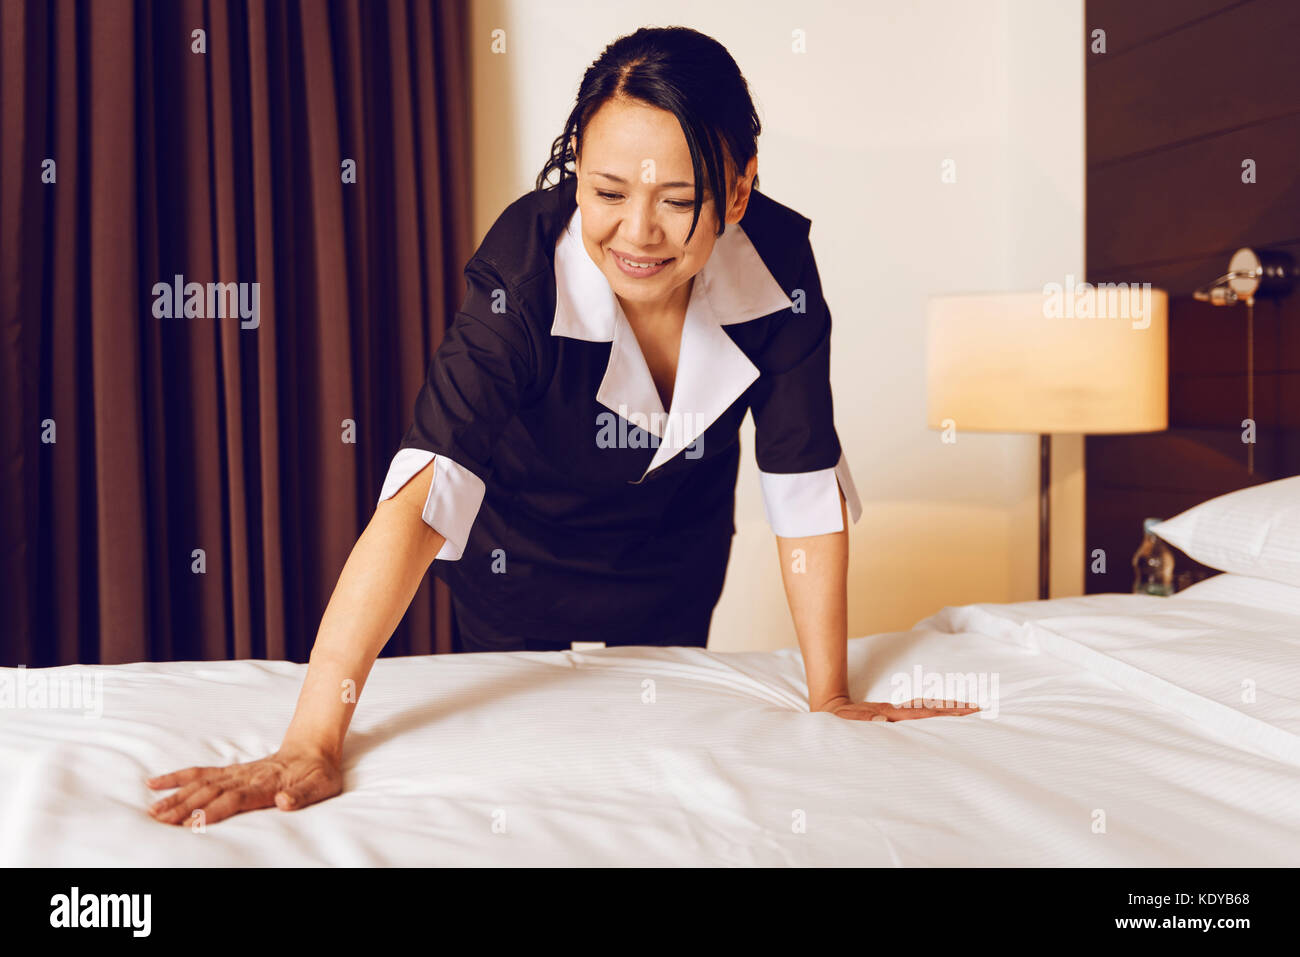 Positive delighted chambermaid doing her job - Stock Image